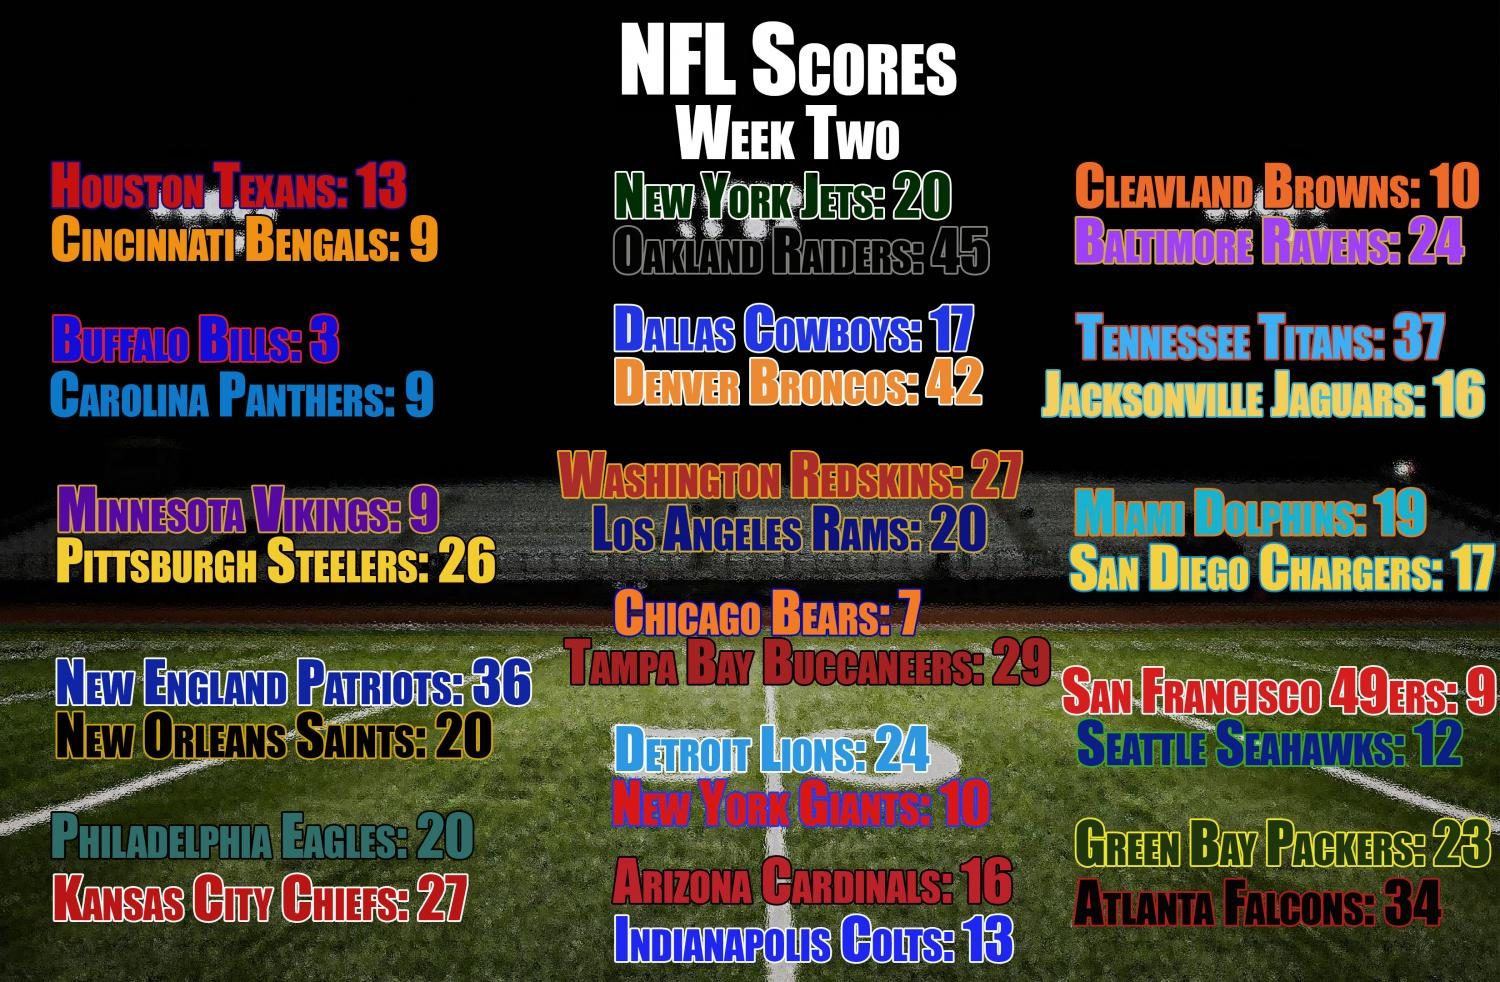 NFL week two scores